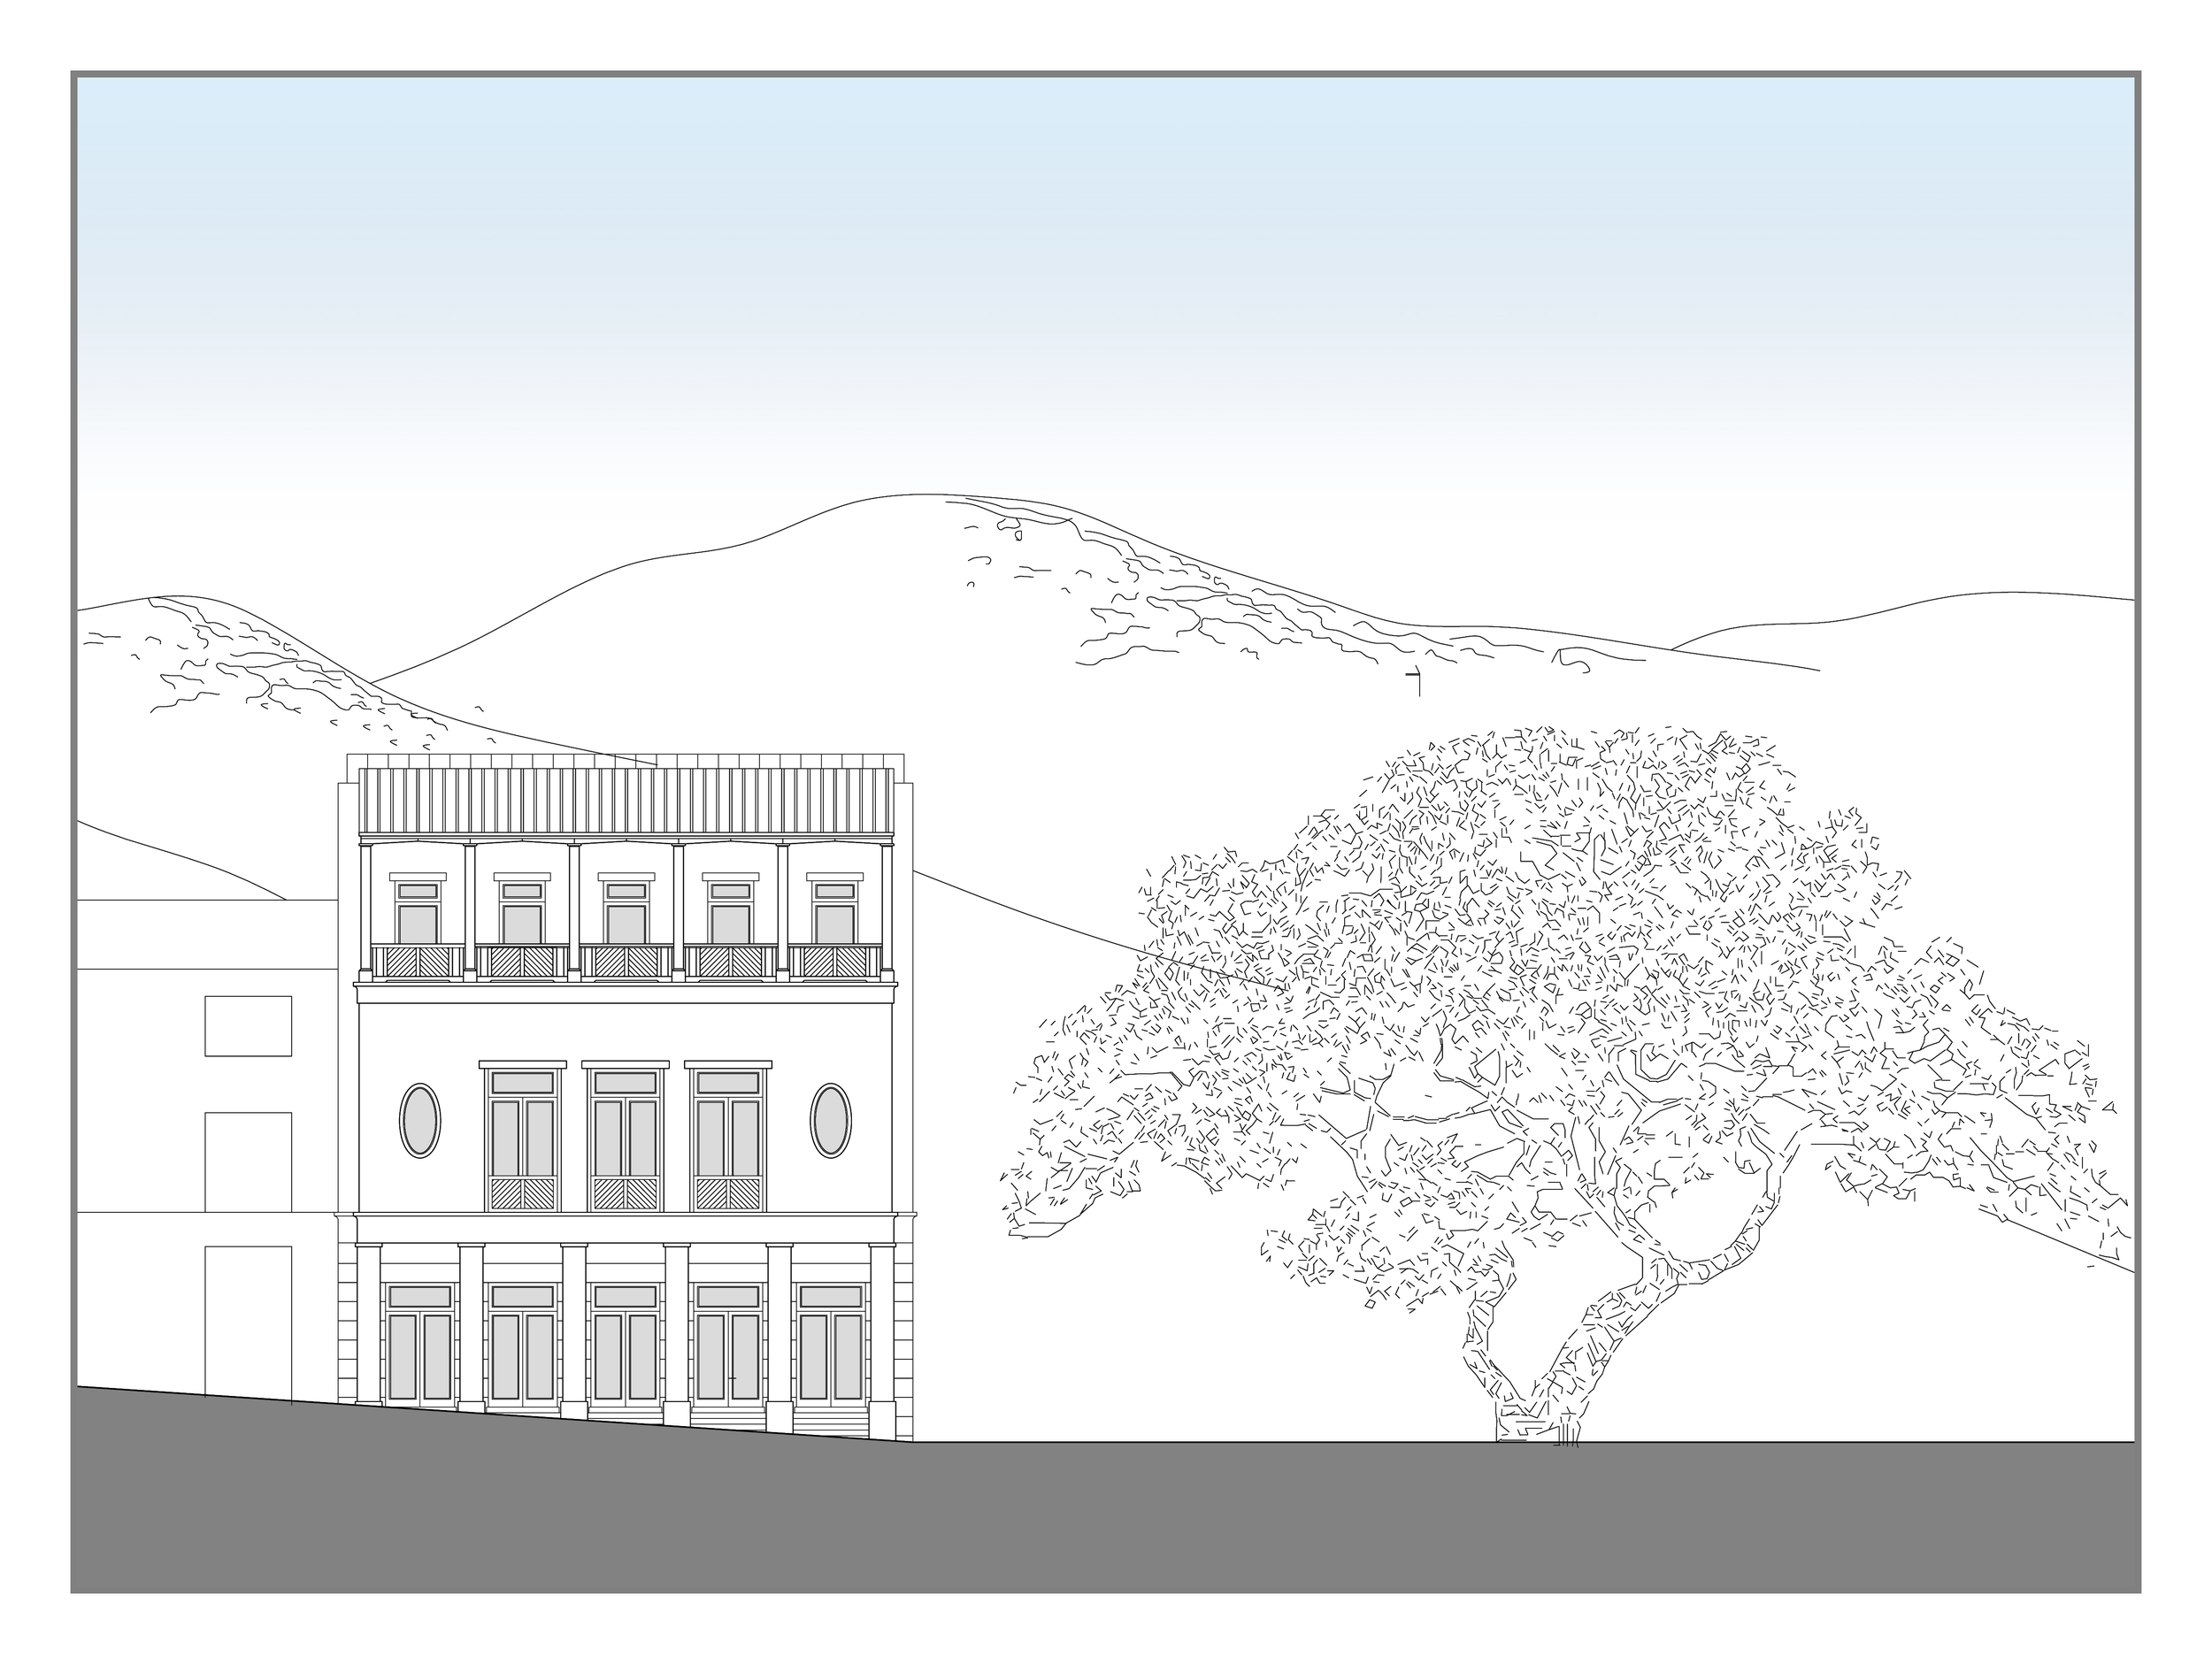 02 Elevation with Tree.jpg